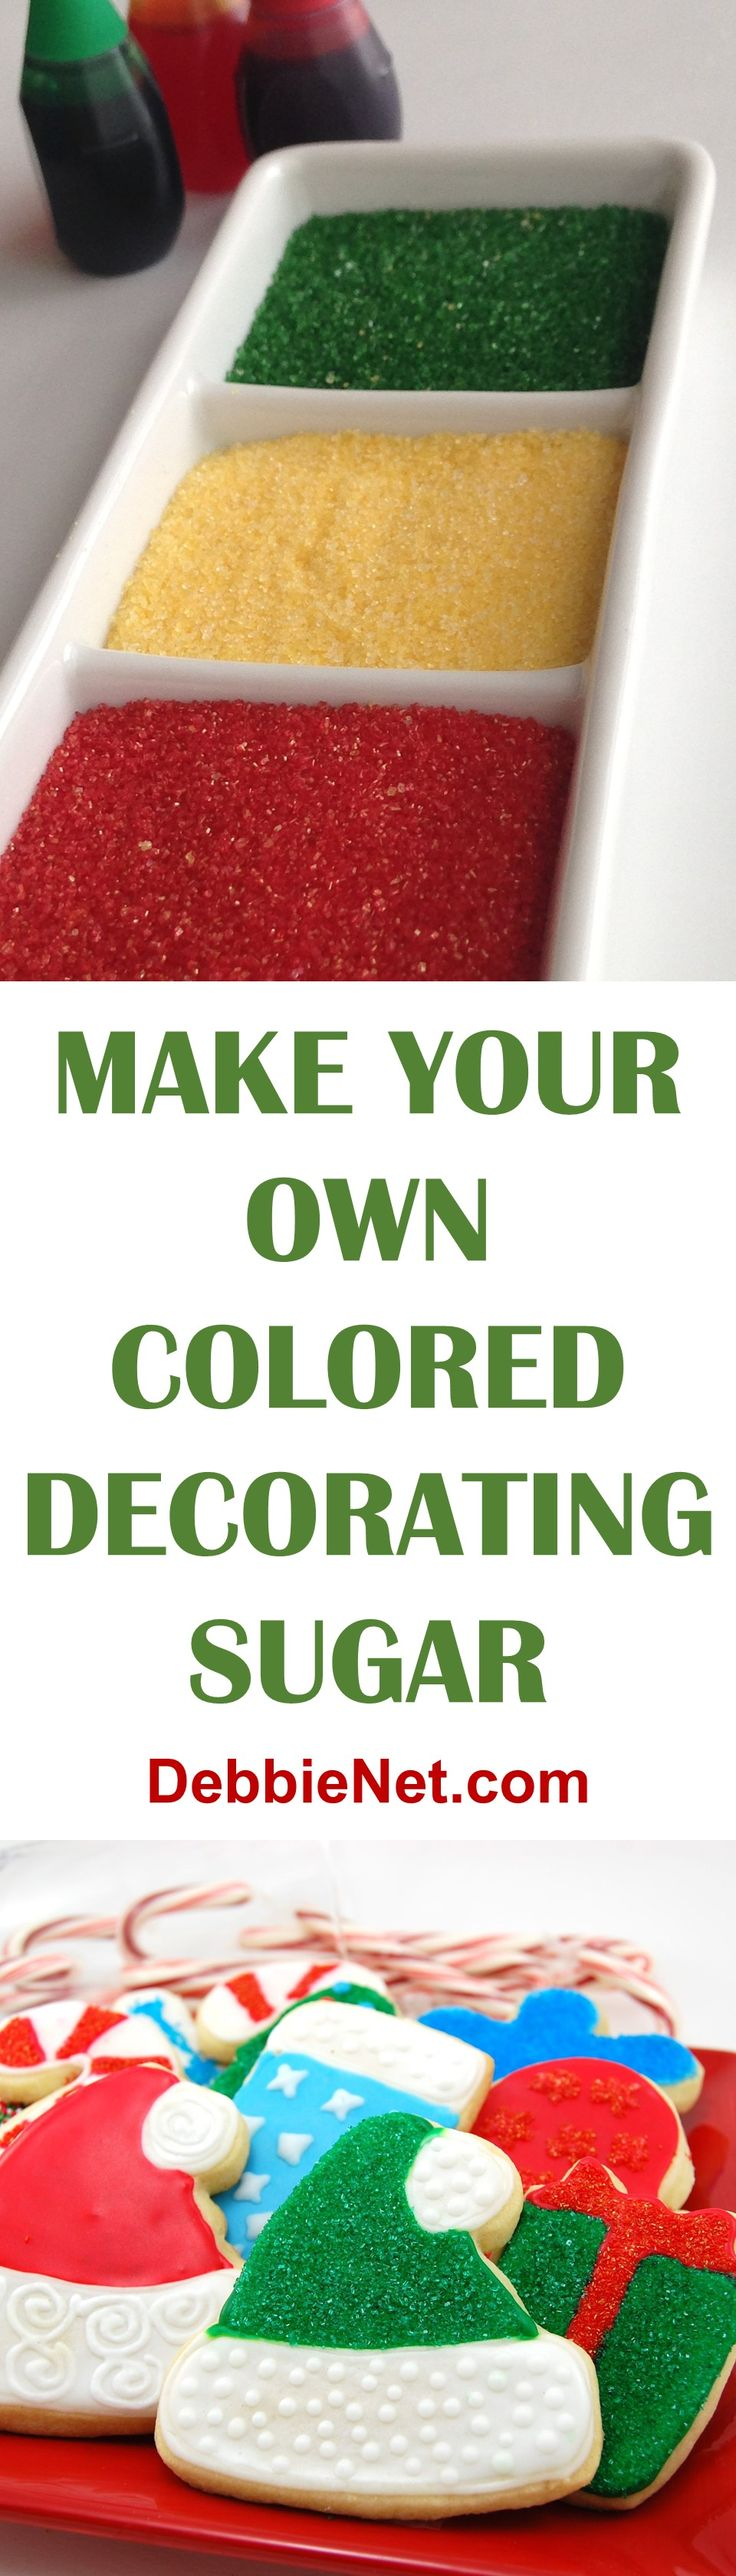 Create your own custom colors for only pennies. Skip the store bought decorating sugar and make your own. | DebbieNet.com